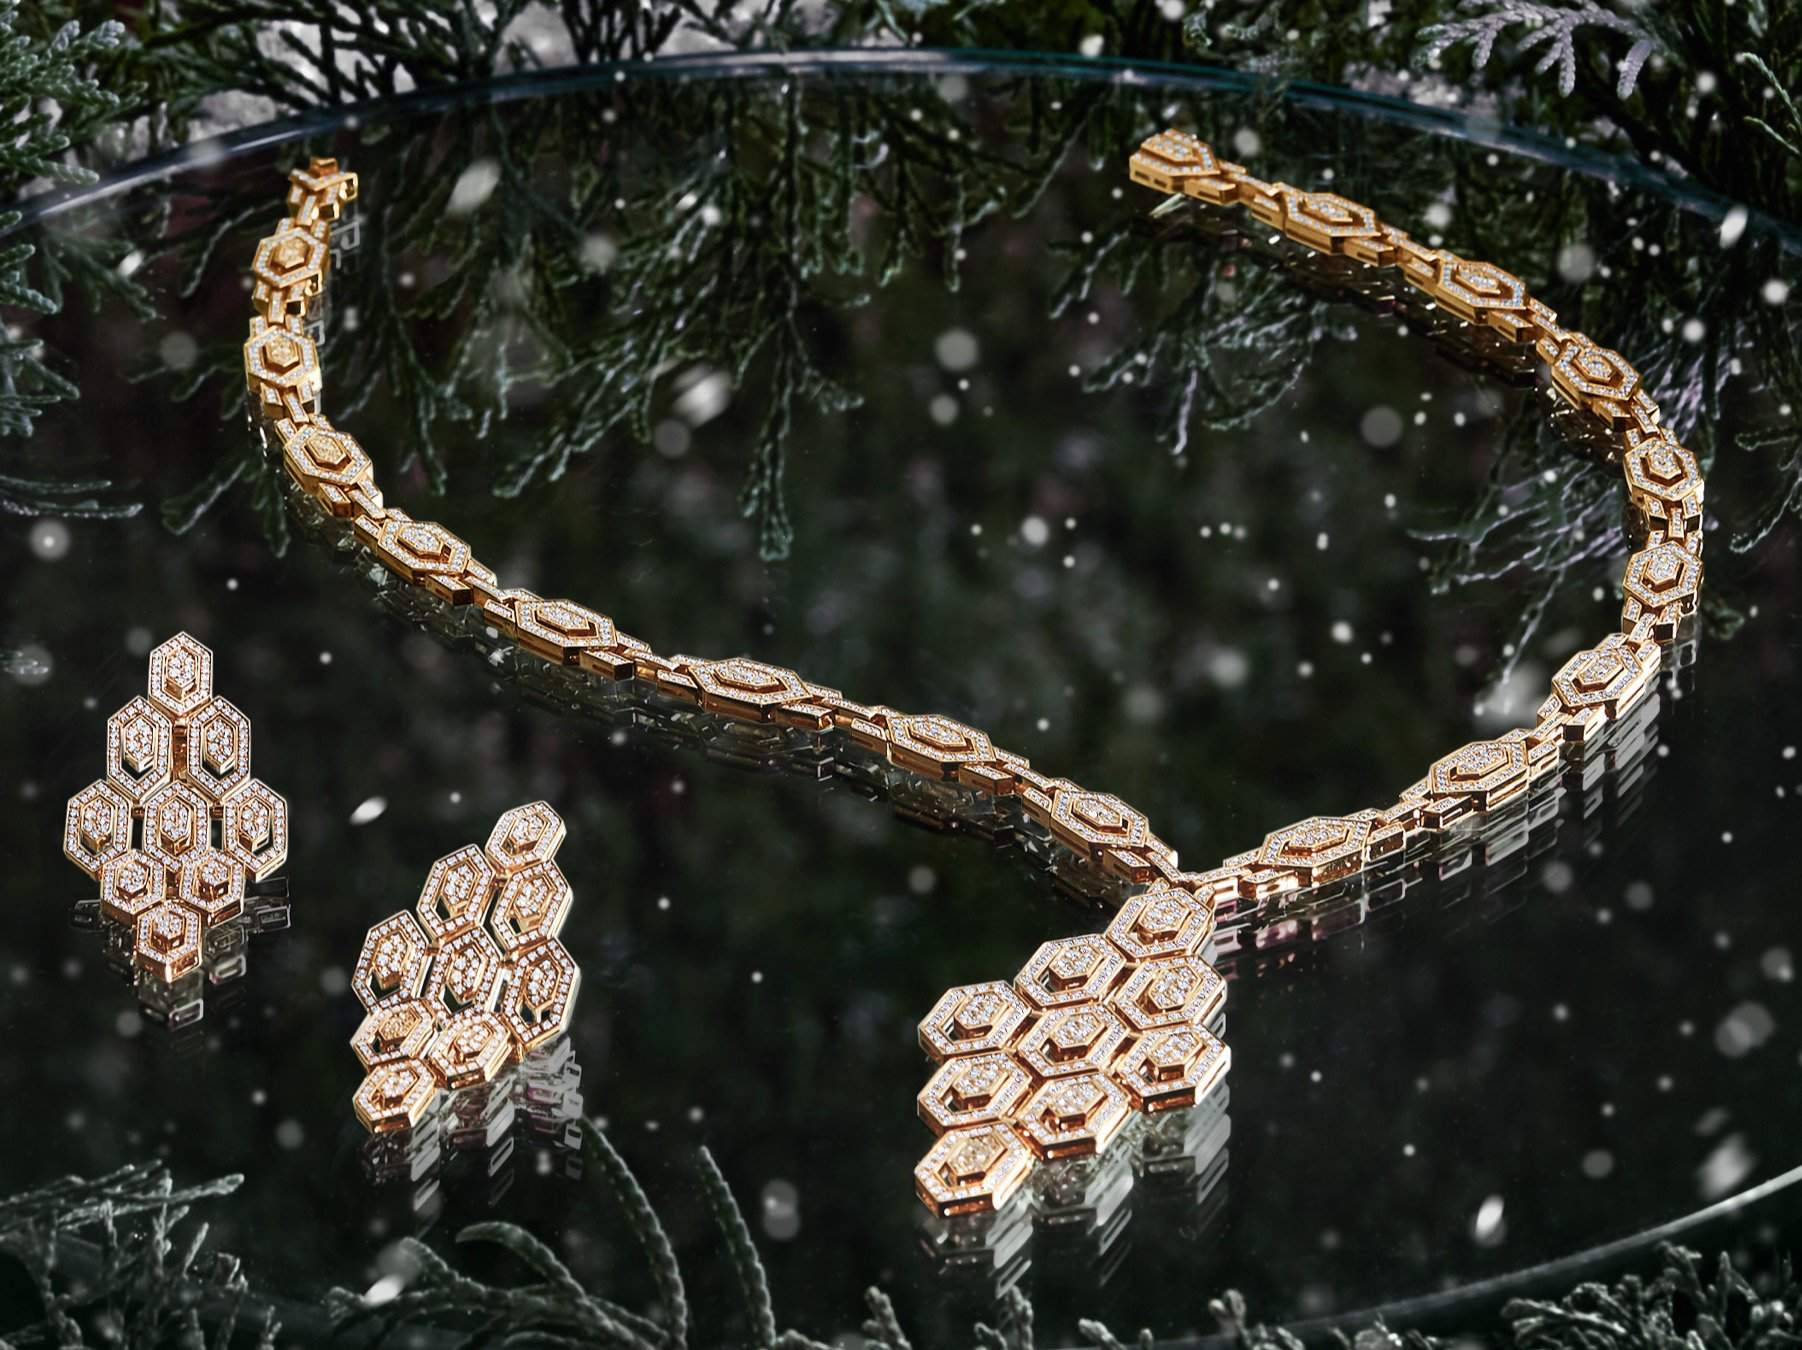 A pair of gold earrings with diamonds and a diamond necklace placed on a reflected surface surrounded by festive green foliage.